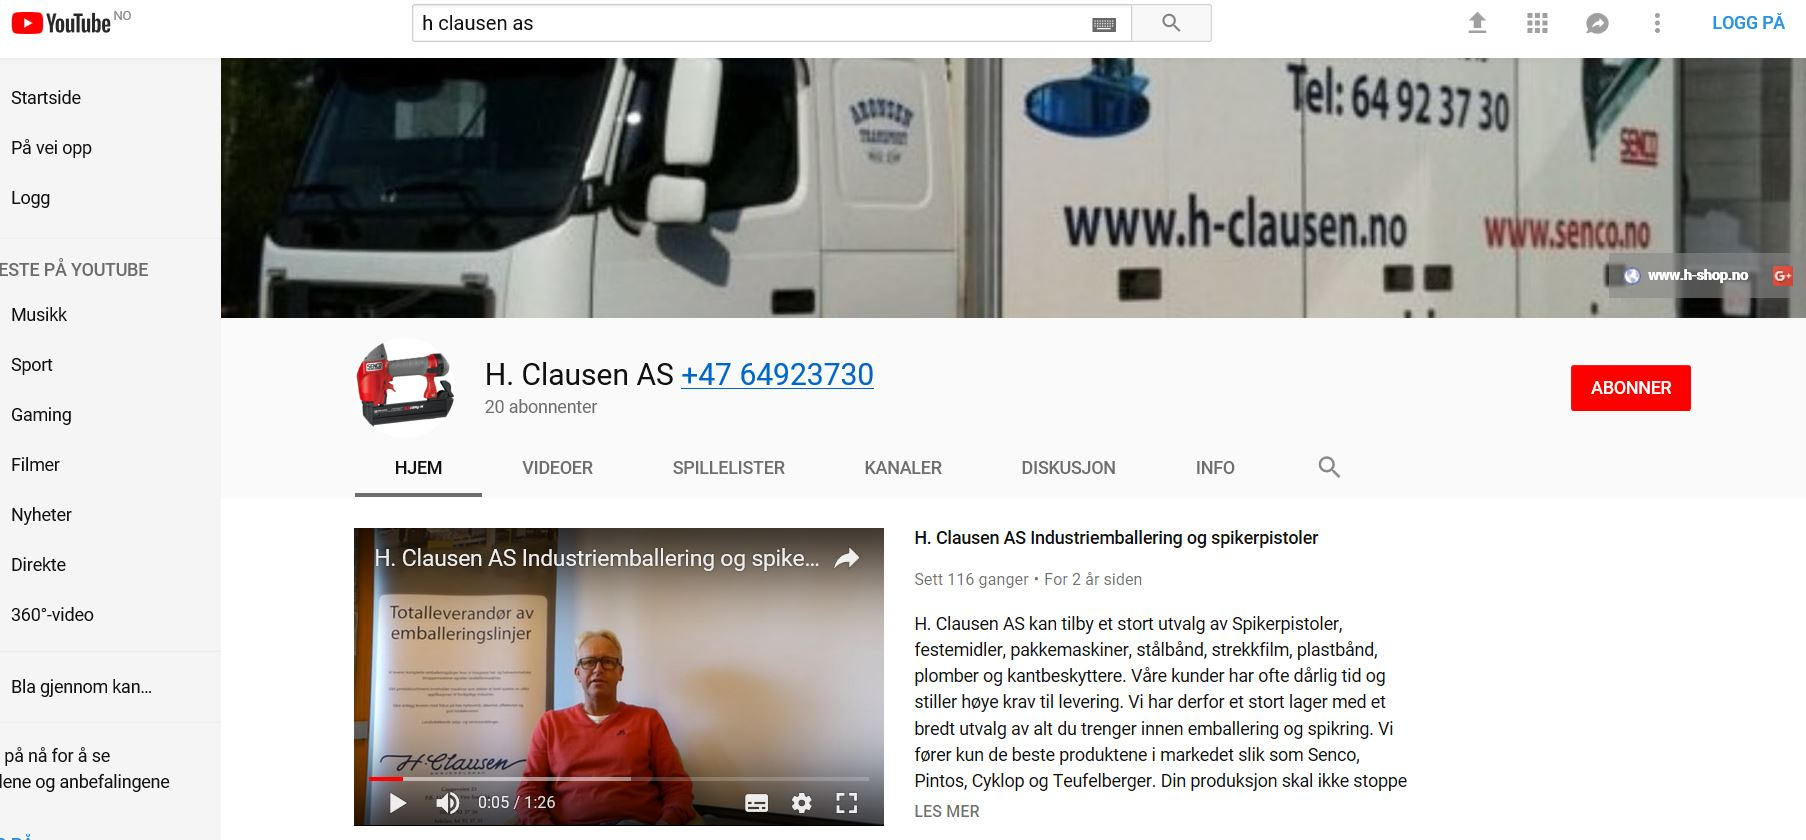 H. Clausen AS på Youtube